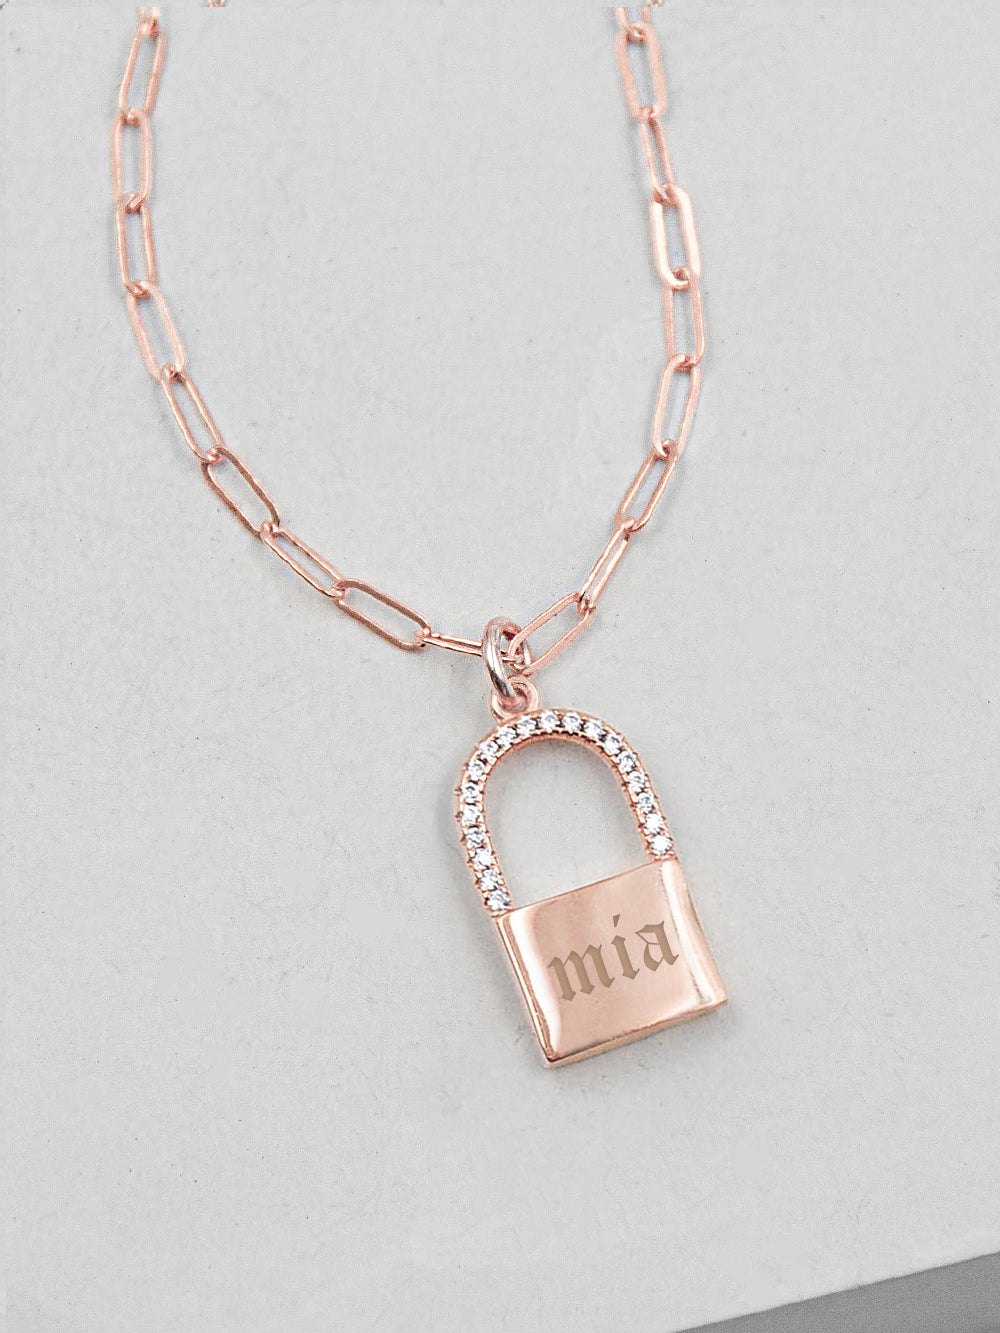 Sparkle Paperclip Padlock Necklace - Rose Gold